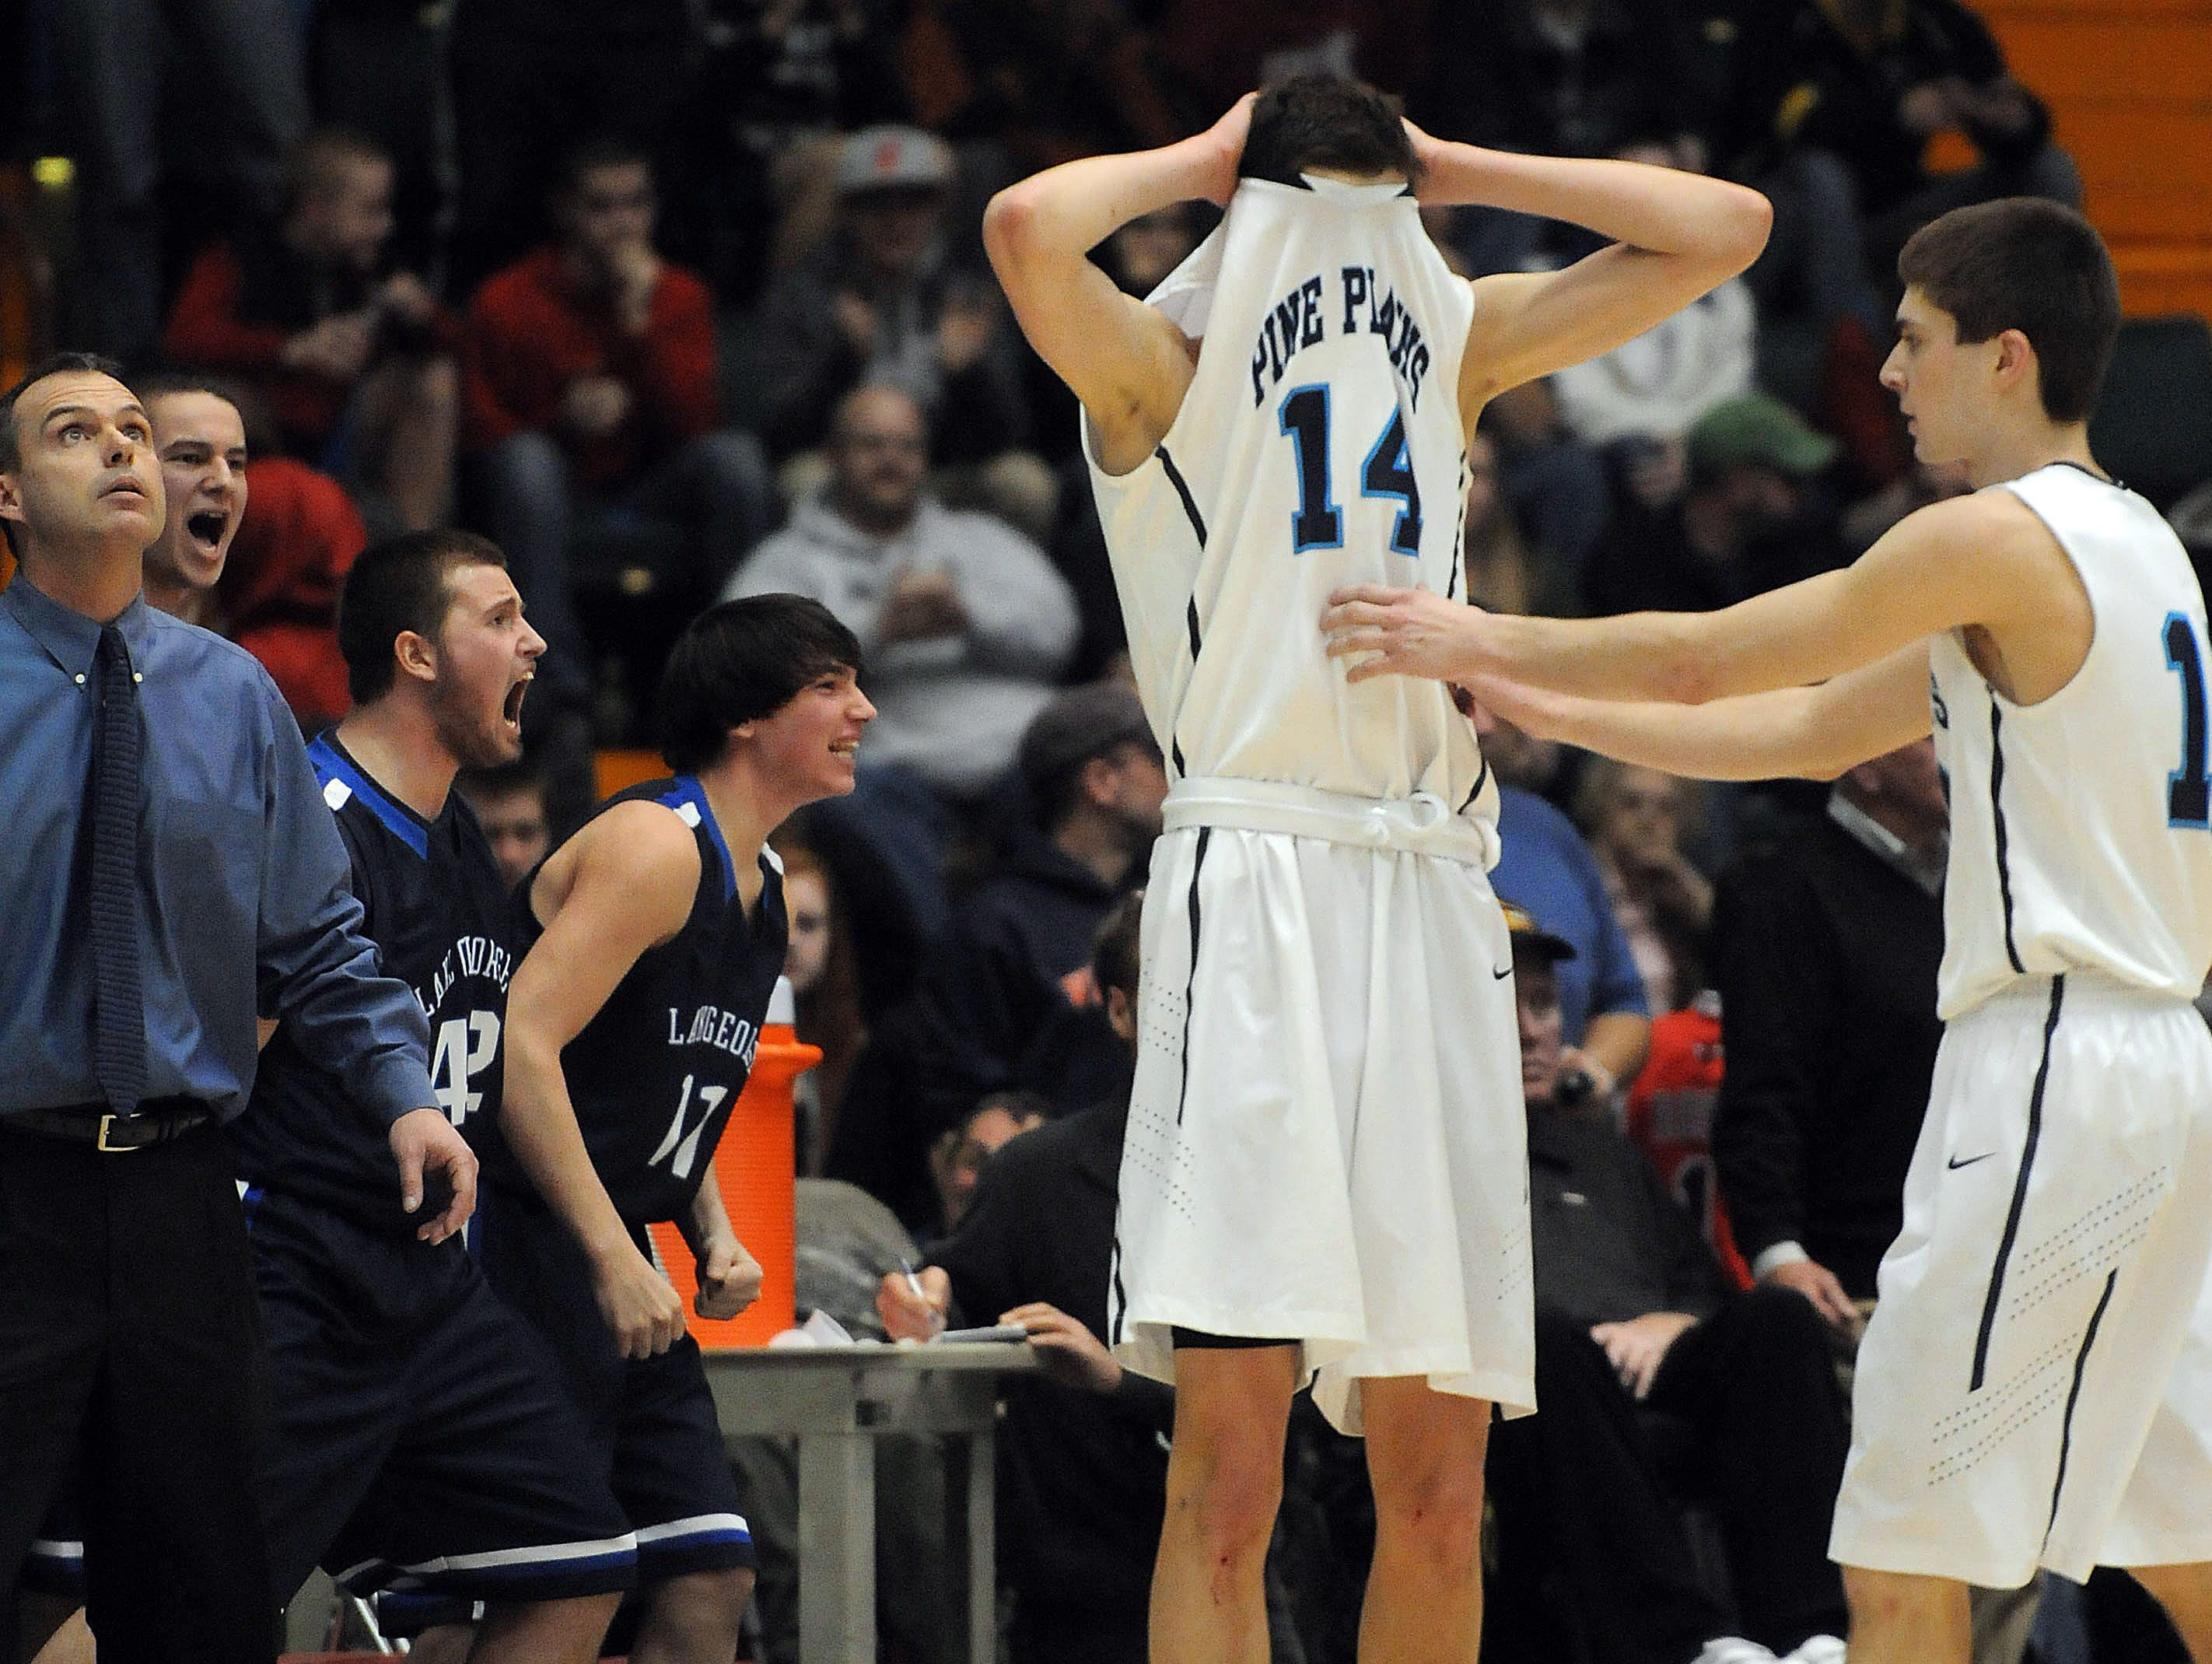 Pine Plains' Tyler Lydon, left, and Justin Cooper, react in the final minute of the game on March 16, 2013 as they trail Lake George in Glens Falls.